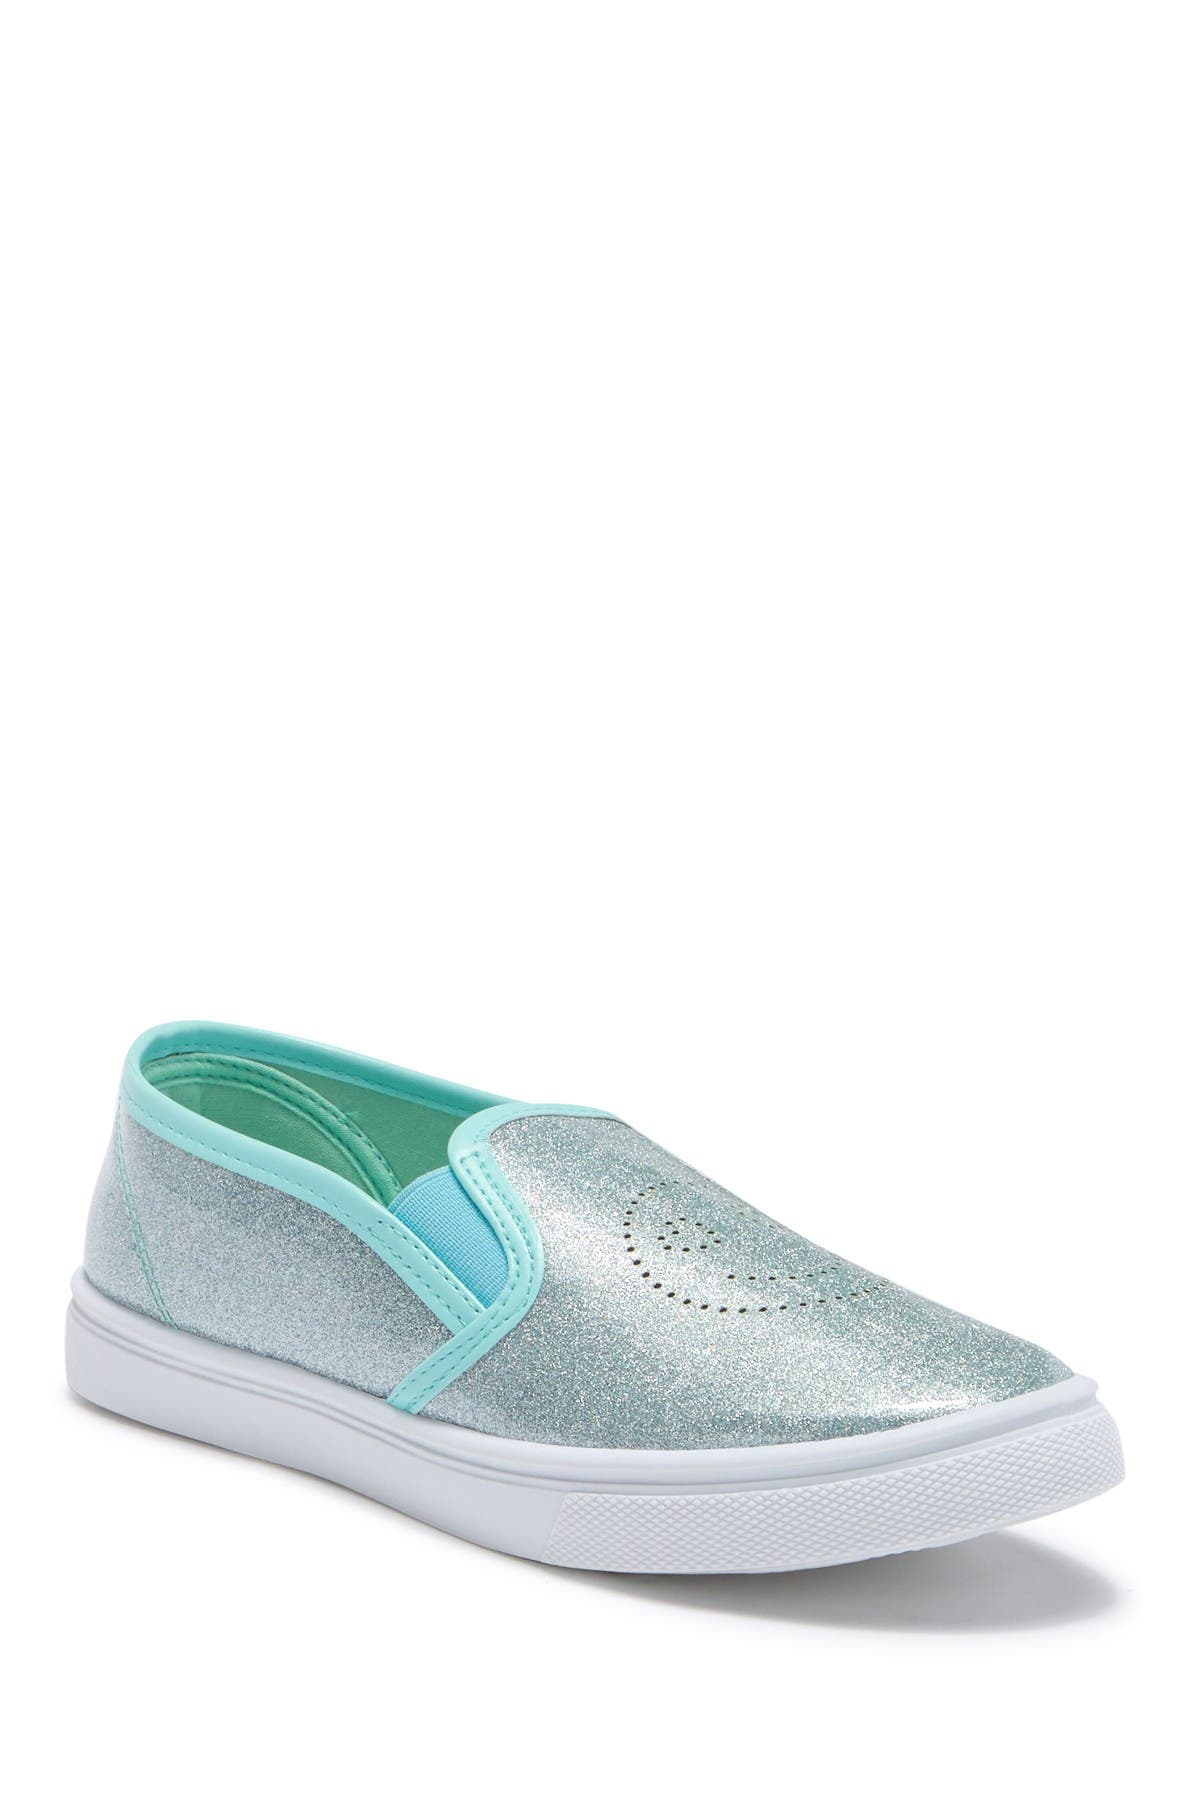 Image of OLIVIA MILLER Perforated Glitter Slip-On Sneaker